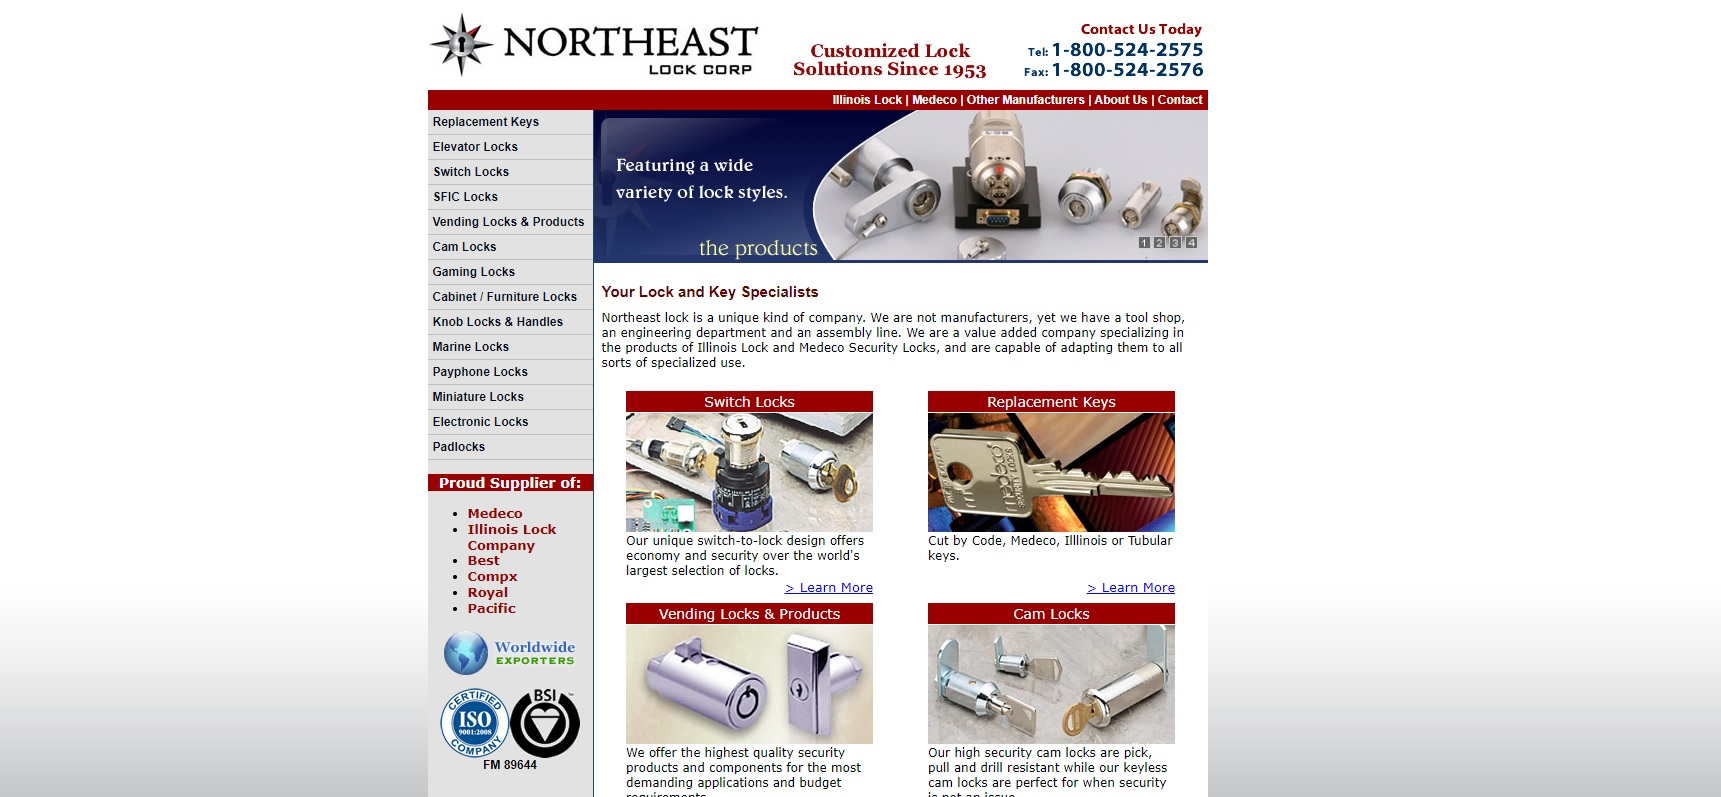 Northeast Lock Corp.